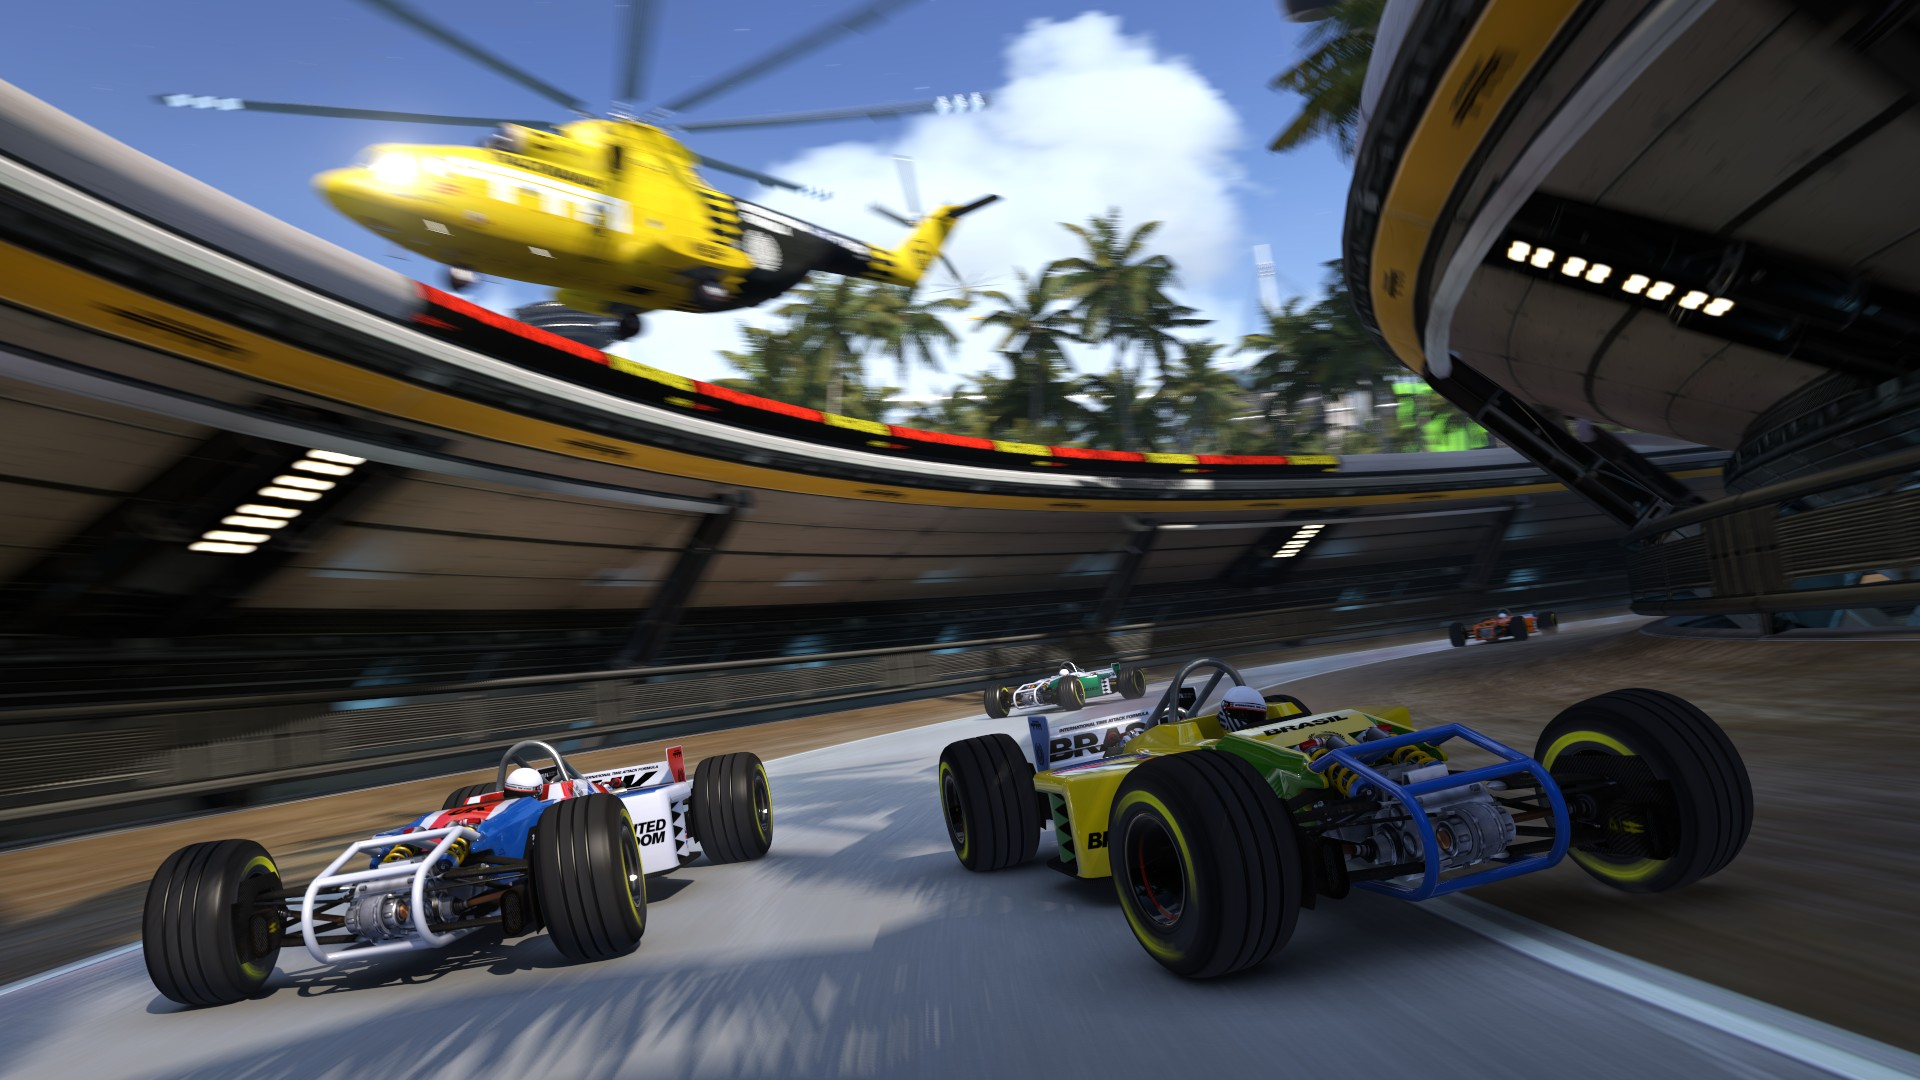 Trackmania Turbo artowork with single seaters